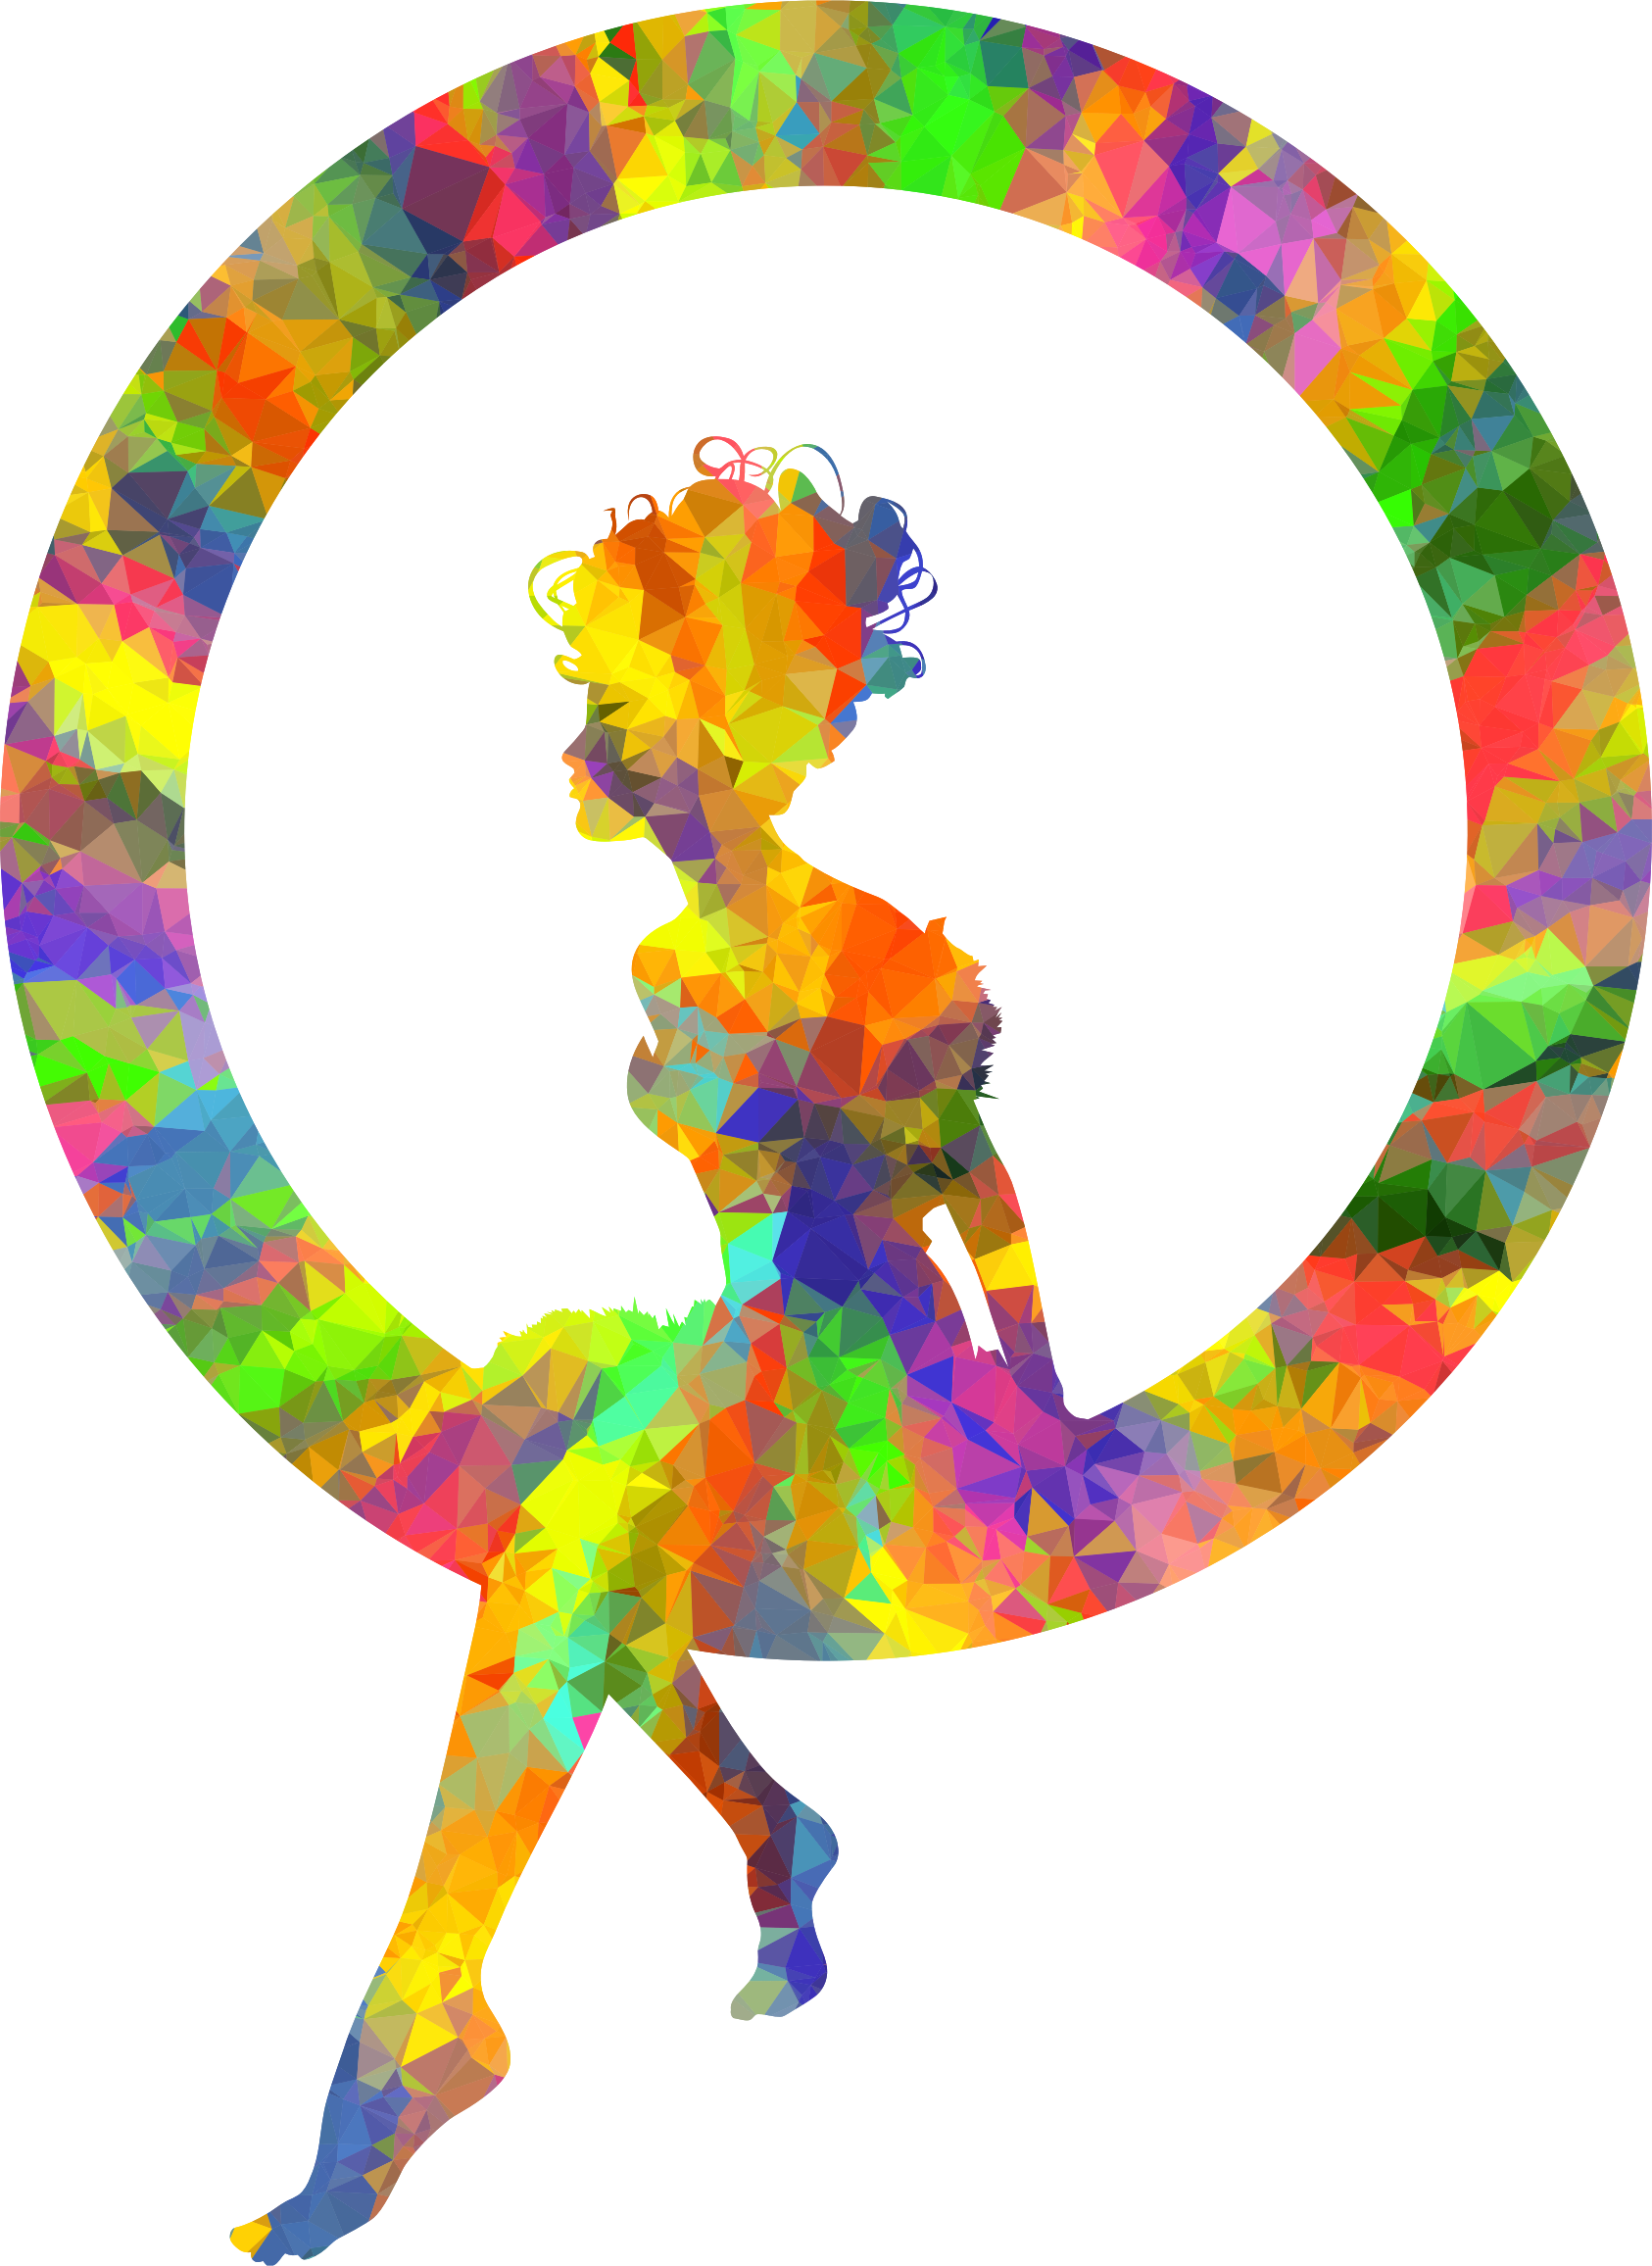 Clipart brain colorful. Silhouette at getdrawings com